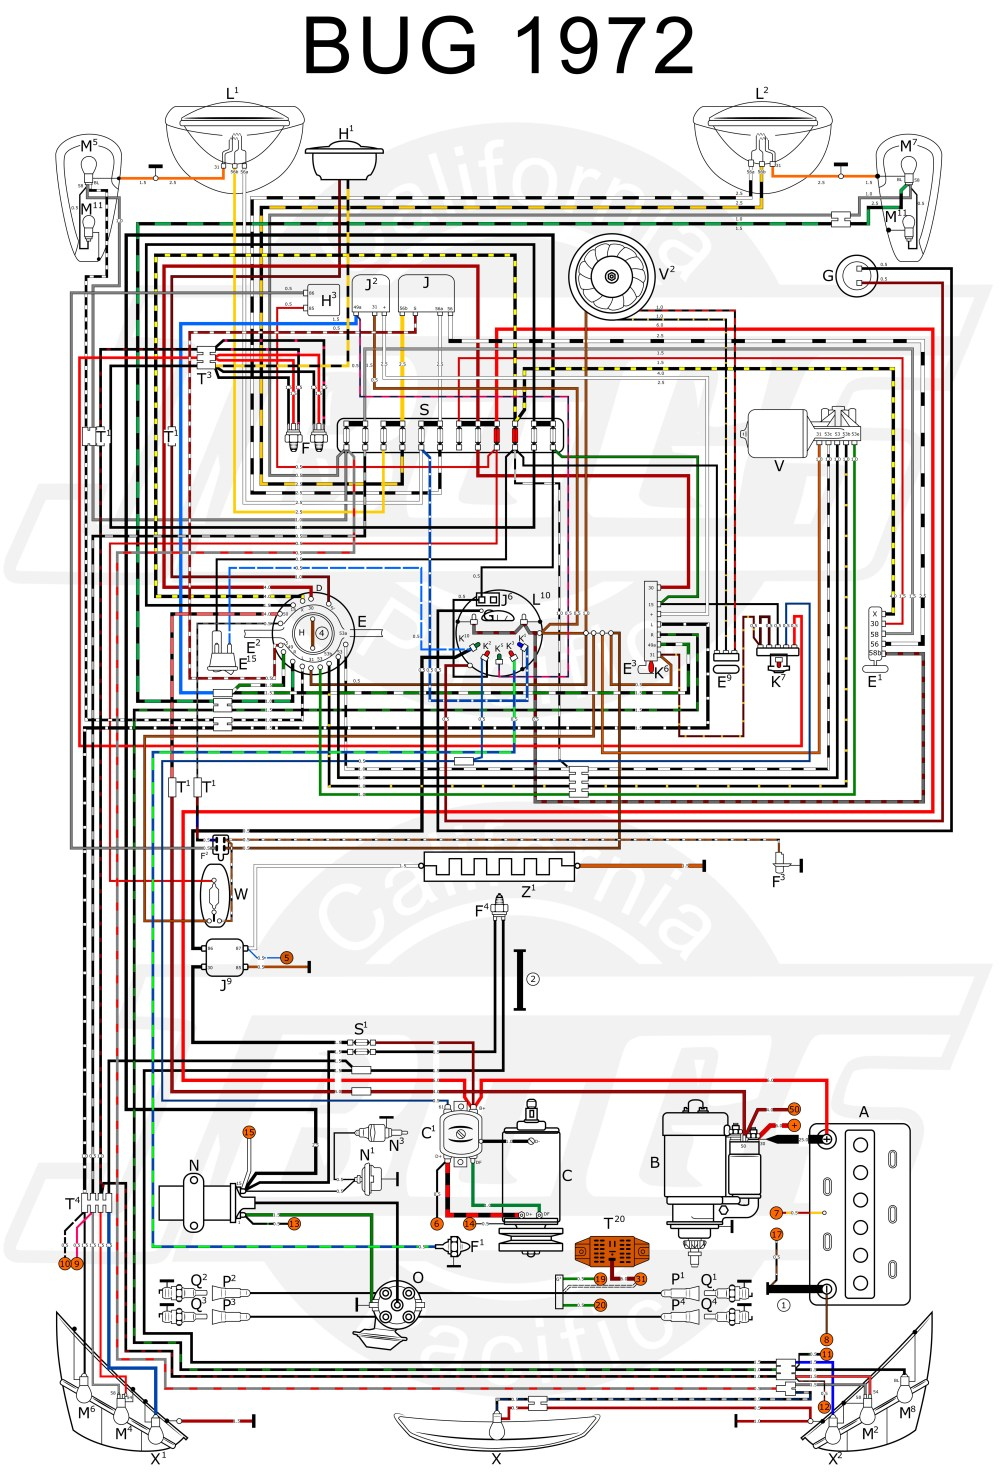 medium resolution of 1970 vw bug wiring diagram wiring diagram fuse box u2022 rh friendsoffido co vw beetle hood 1970 vw beetle headlight switch